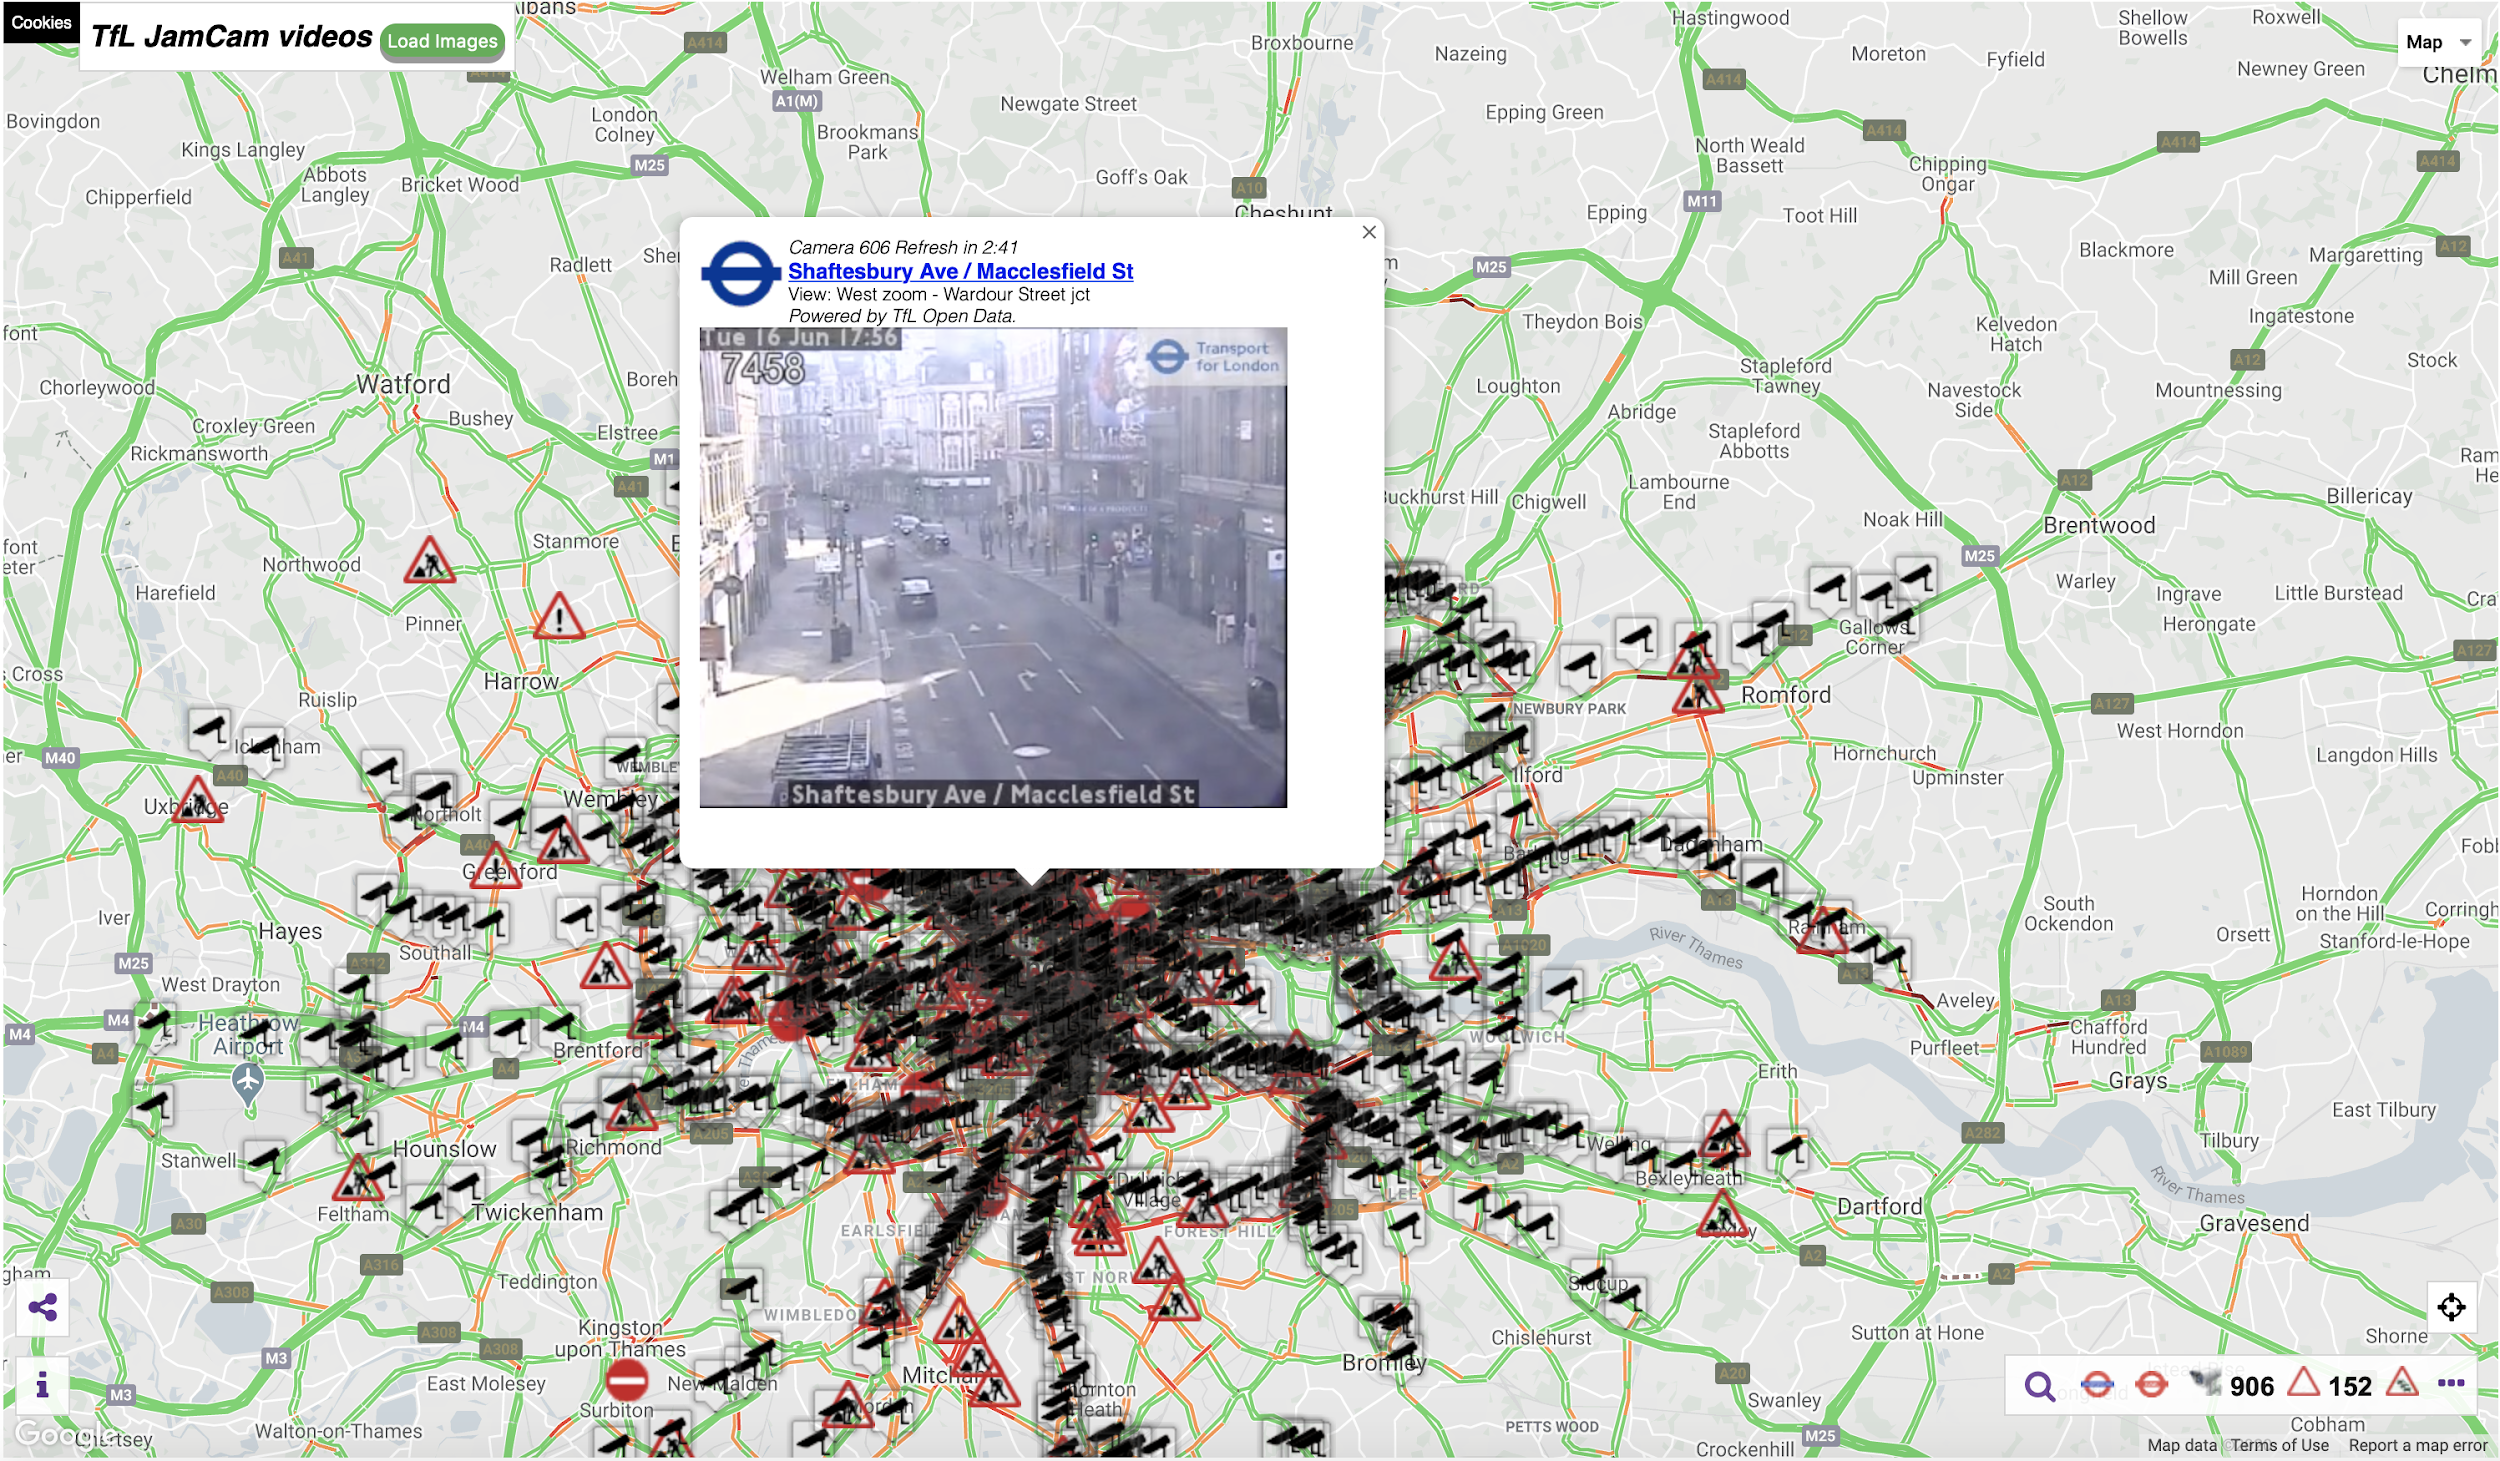 A map of London showing the distribution of CCTV traffic cameras across the city.